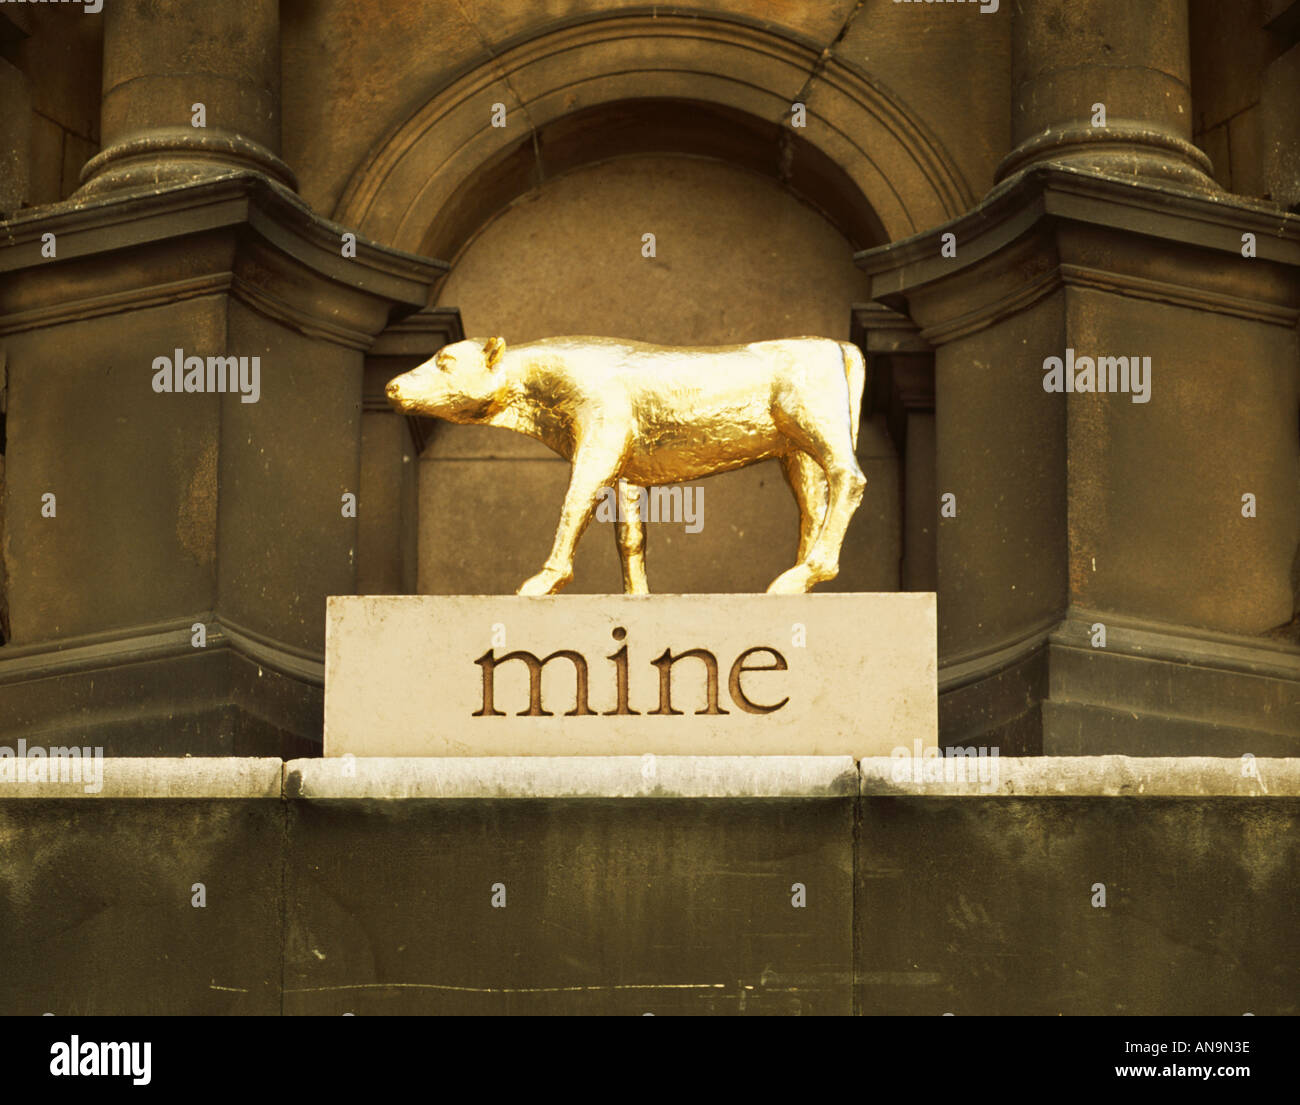 Free coloring page golden calf - Free Coloring Page Golden Calf Statue Of Golden Calf Imprinted With The Word Mine At